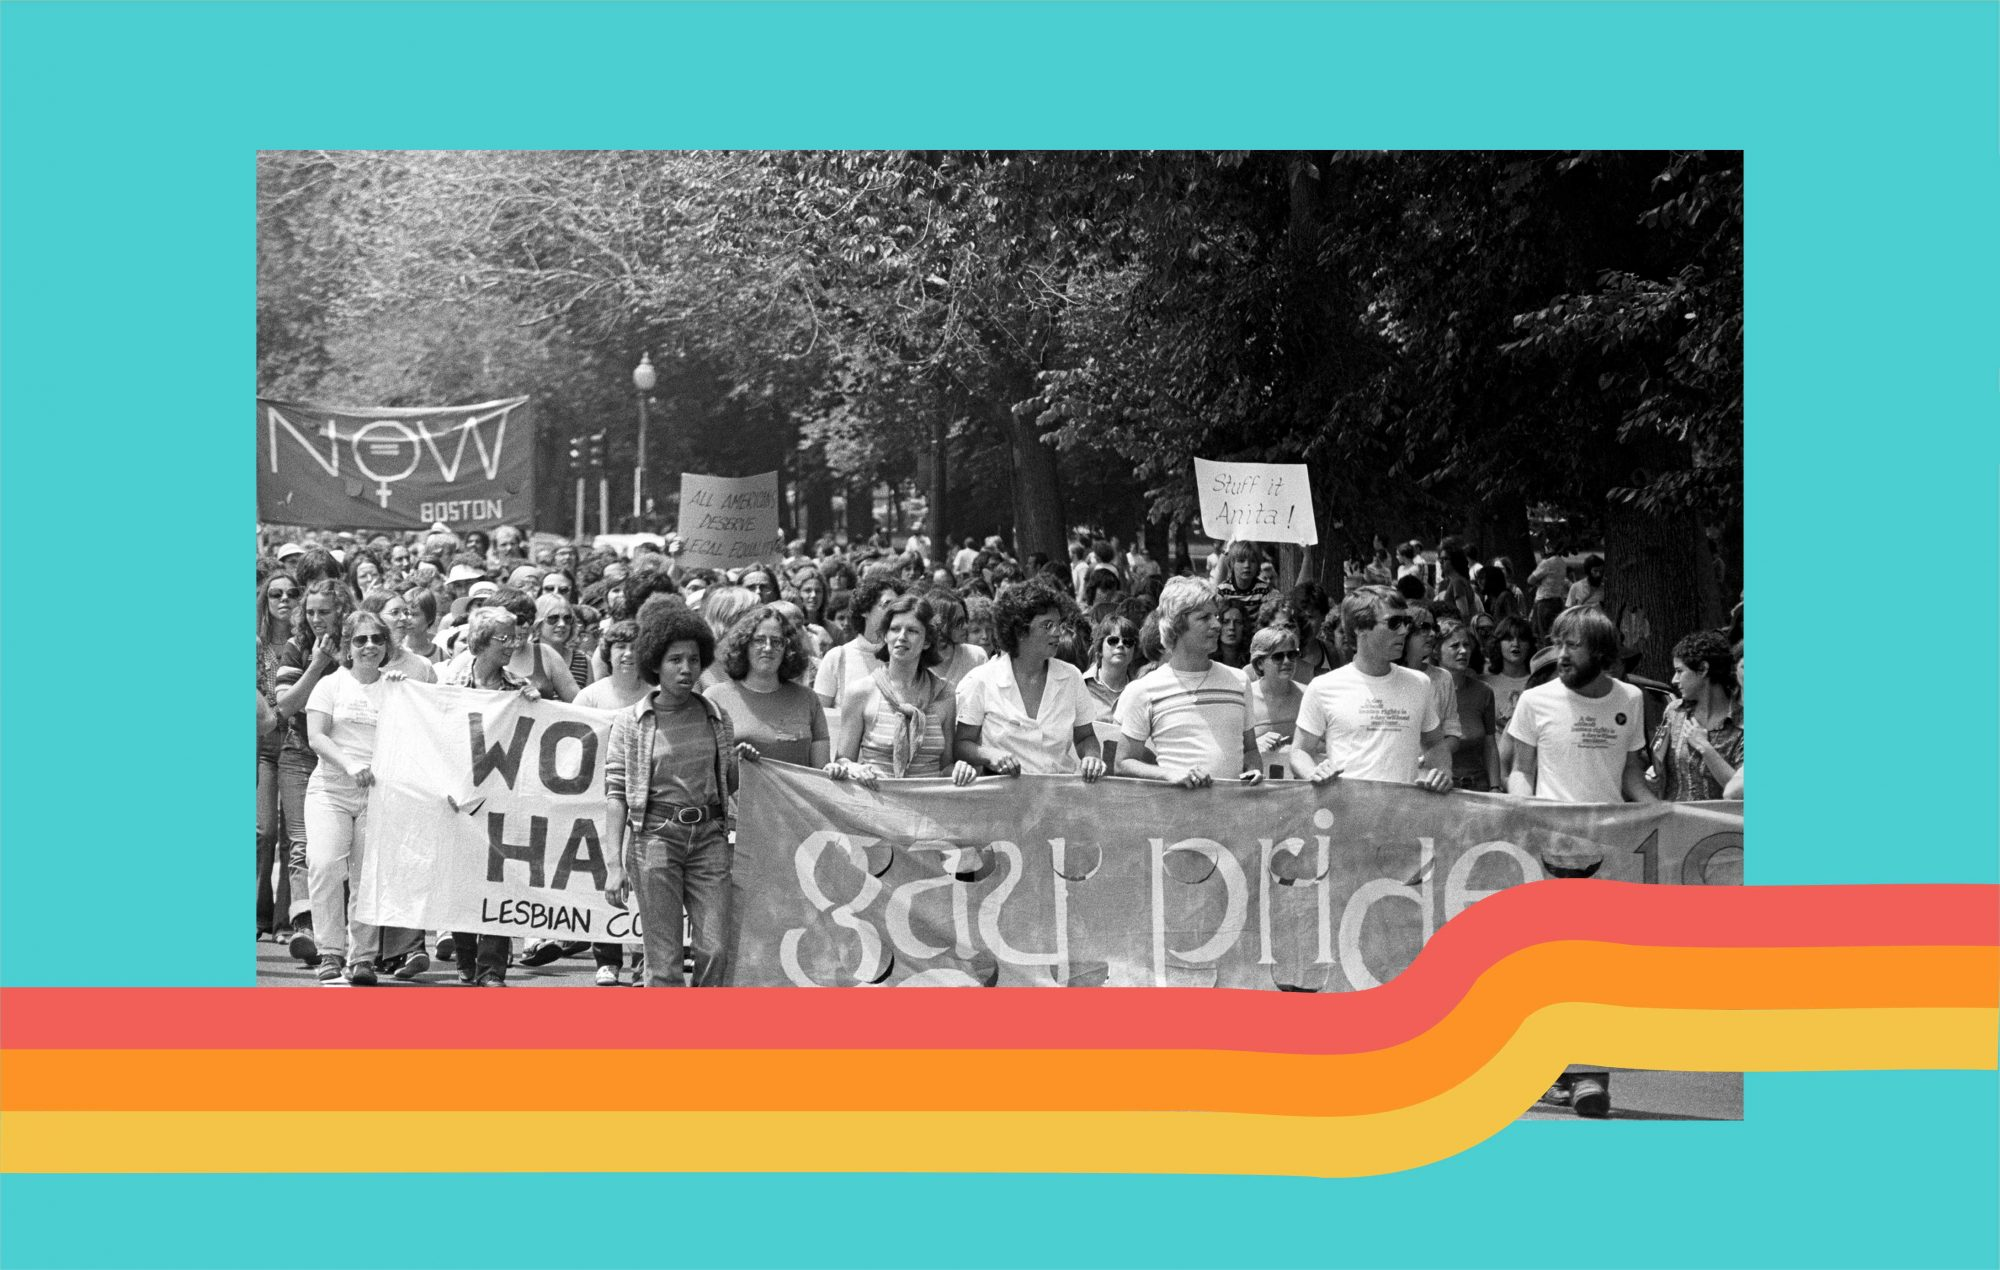 View of the large crowd, some of whom are holding up handmade signs and banners, participating in a gay and lesbian pride parade in the Back Bay neighborhood of Boston, 1975